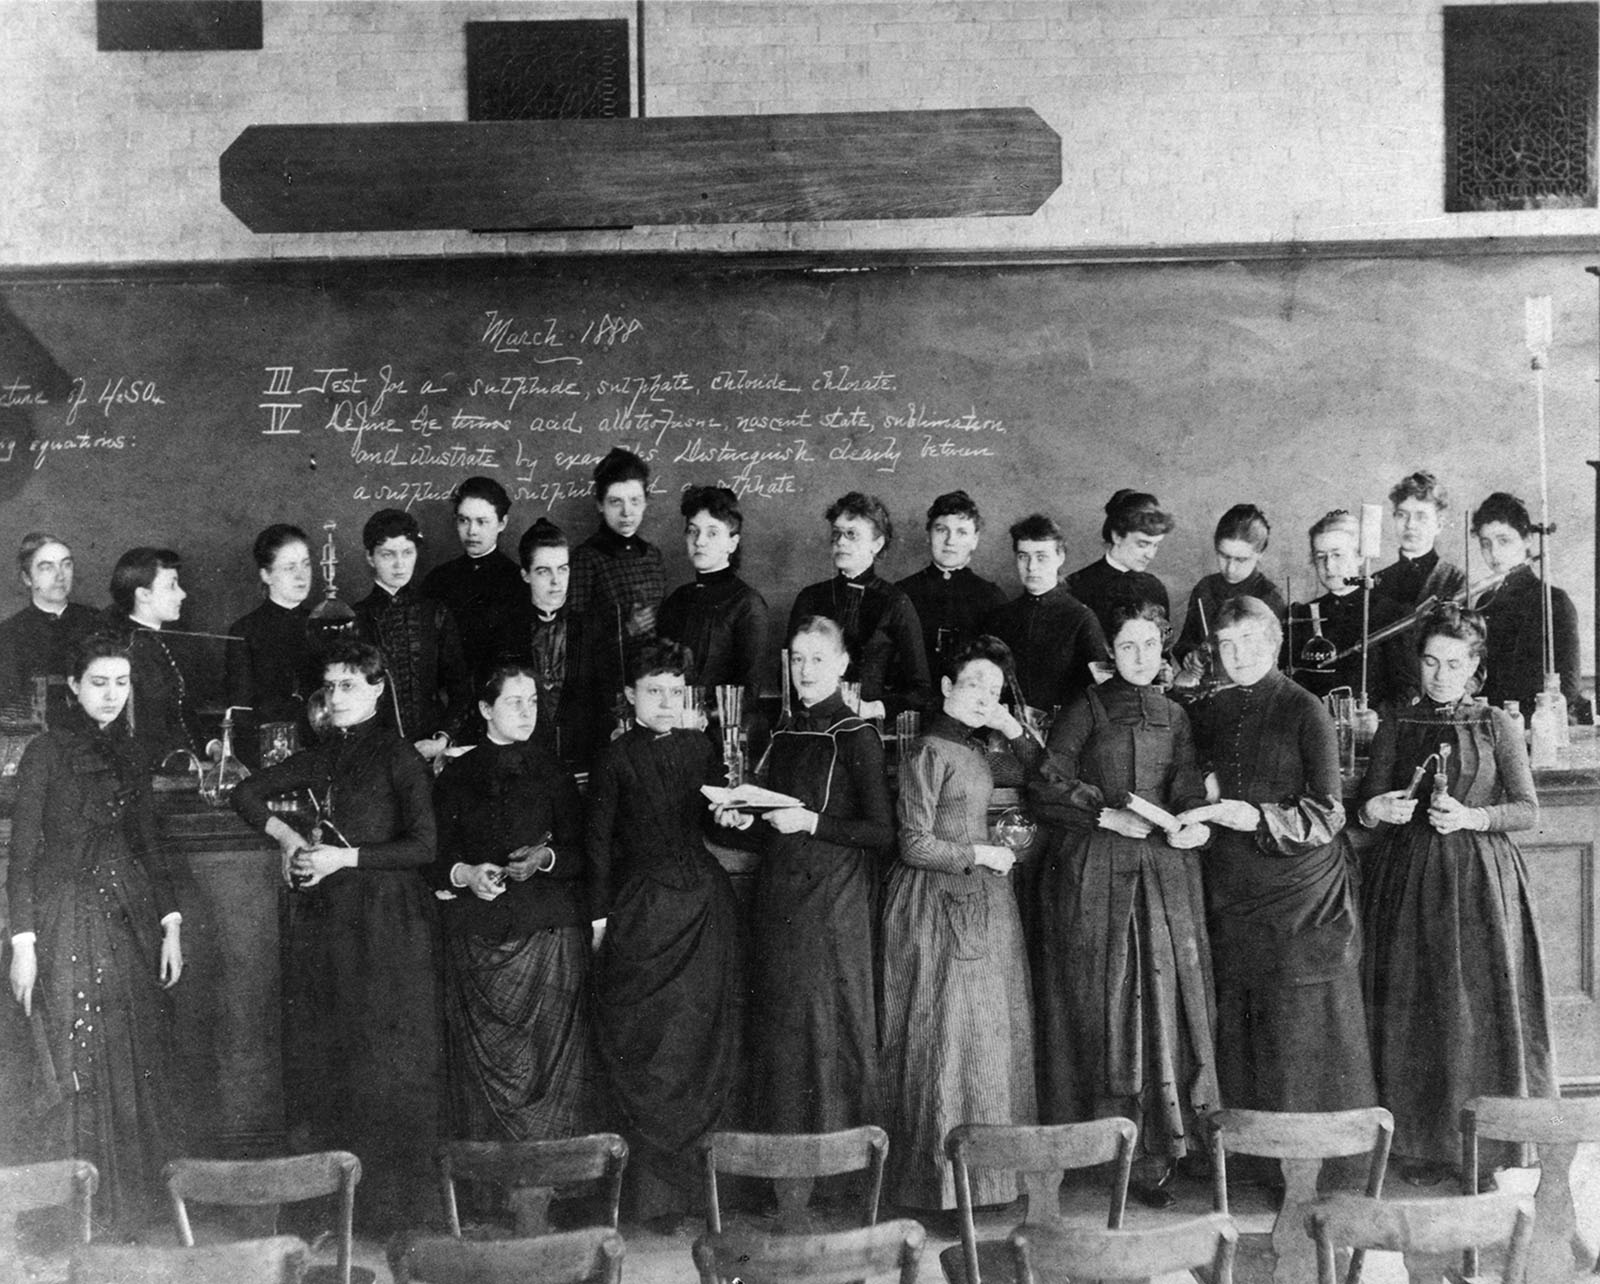 Ellen Swallow Richards and female college students in two lines in front of a classroom. Richards is the figure all the way on the left in the back row. All of the students with her are wearing dark dresses. They are all white. The chalkboard behind them indicates that the date is March 1888.